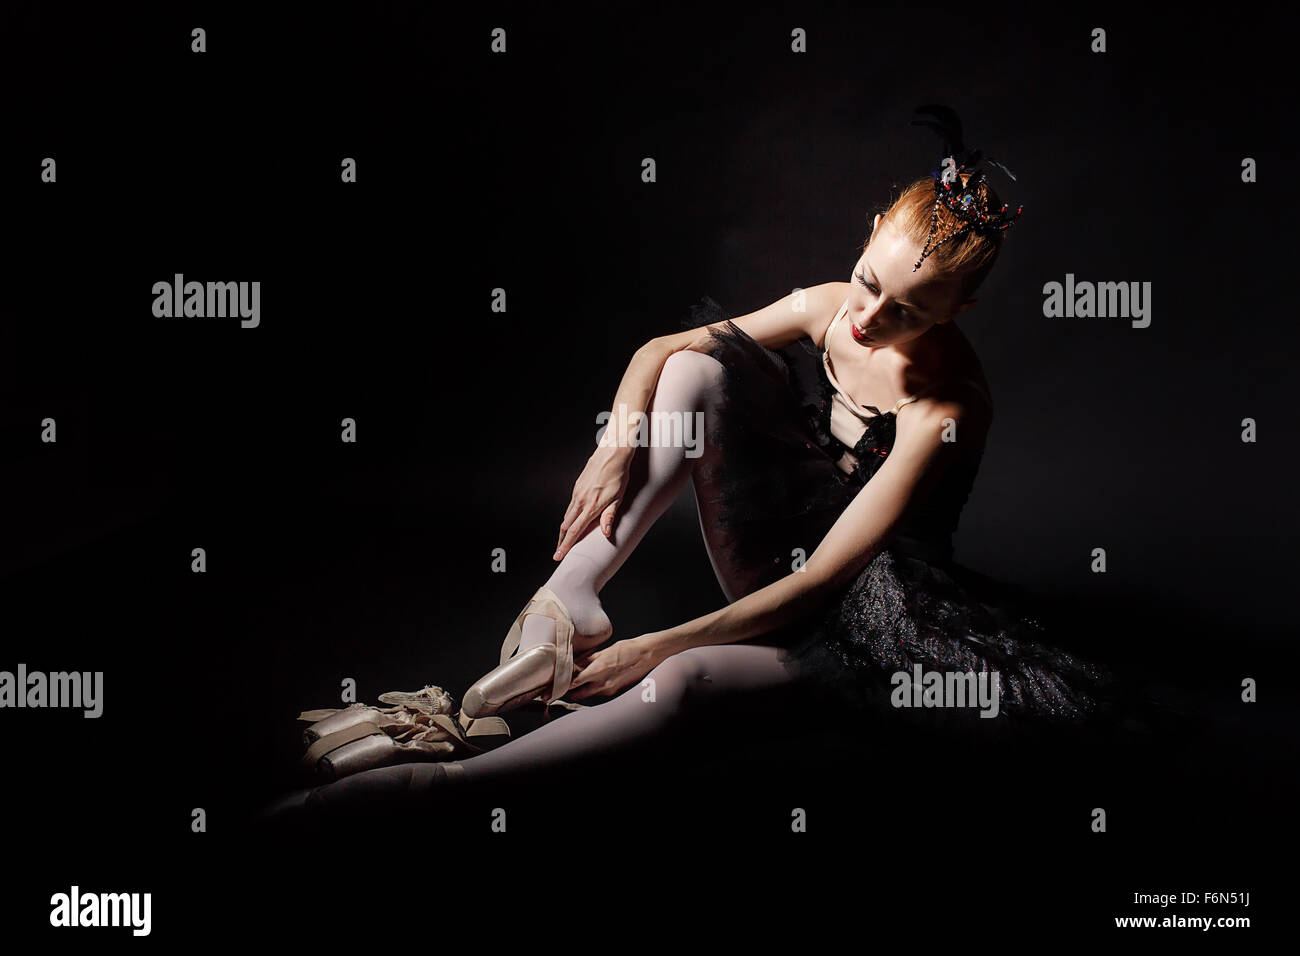 Slim ballerina in a black corset and black tutu tying pointe shoes. Classical Ballet. Photography in low key. - Stock Image